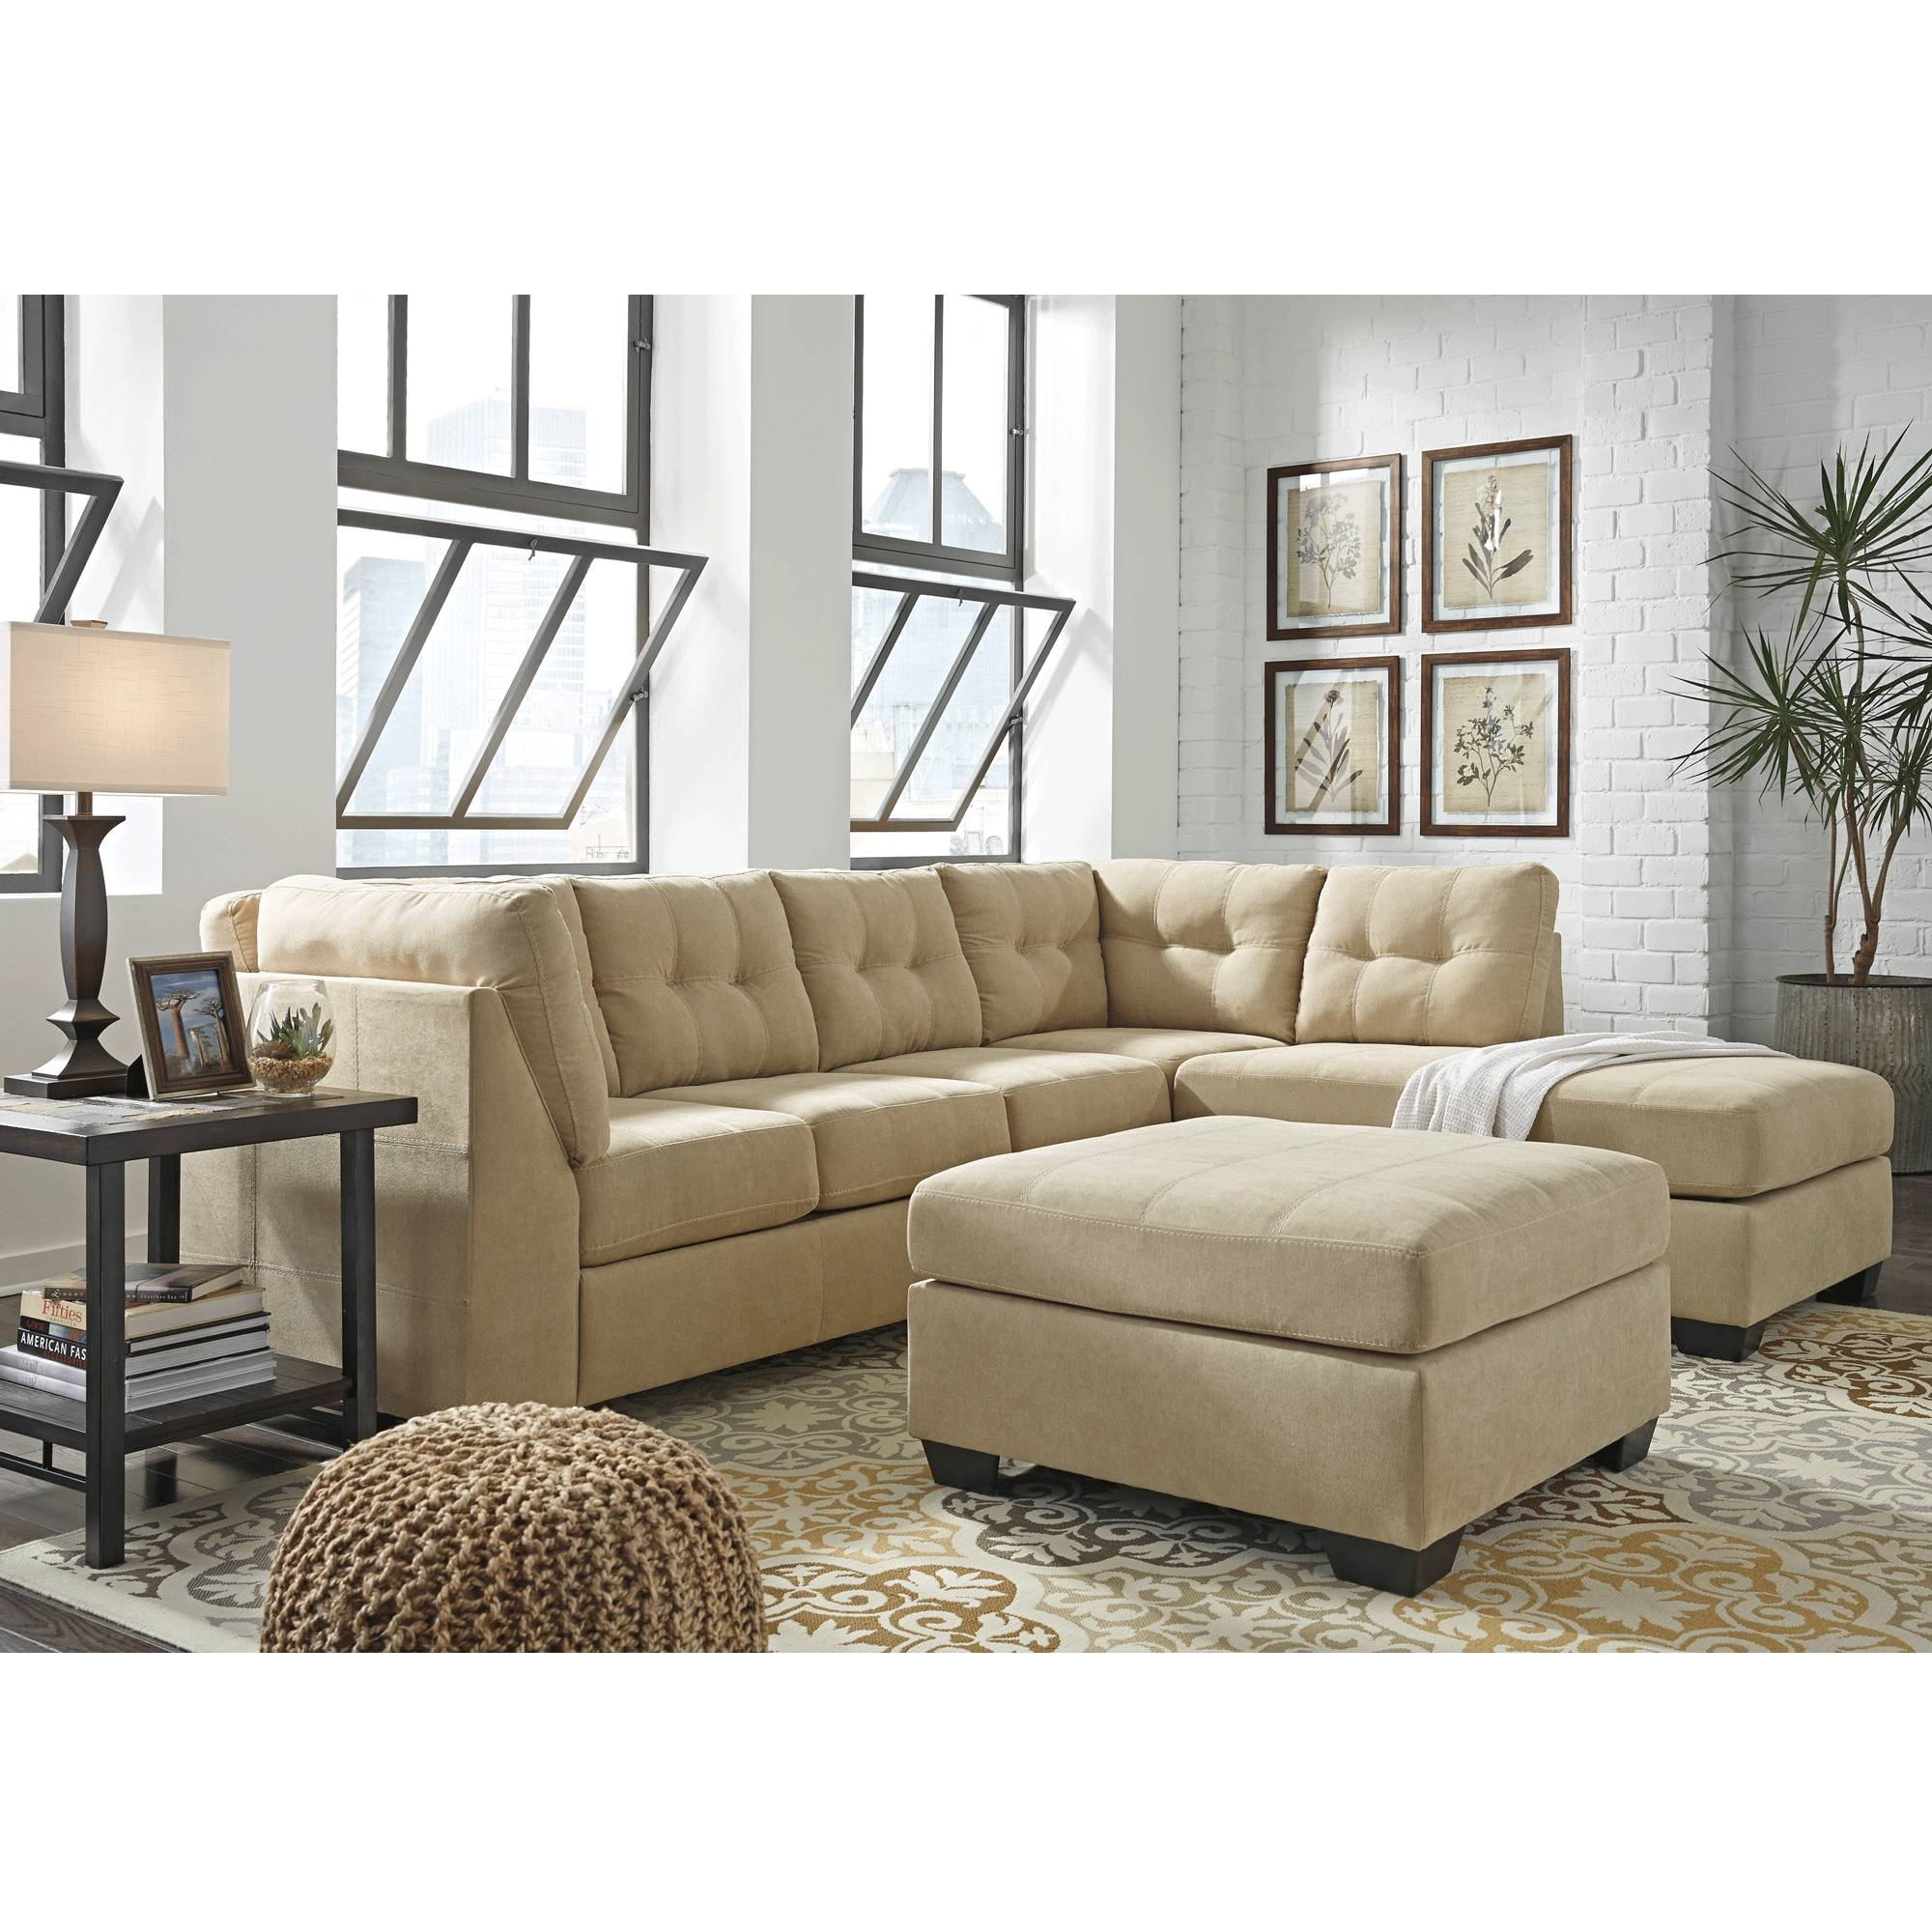 25 Ideas of Down Sectional Sofa